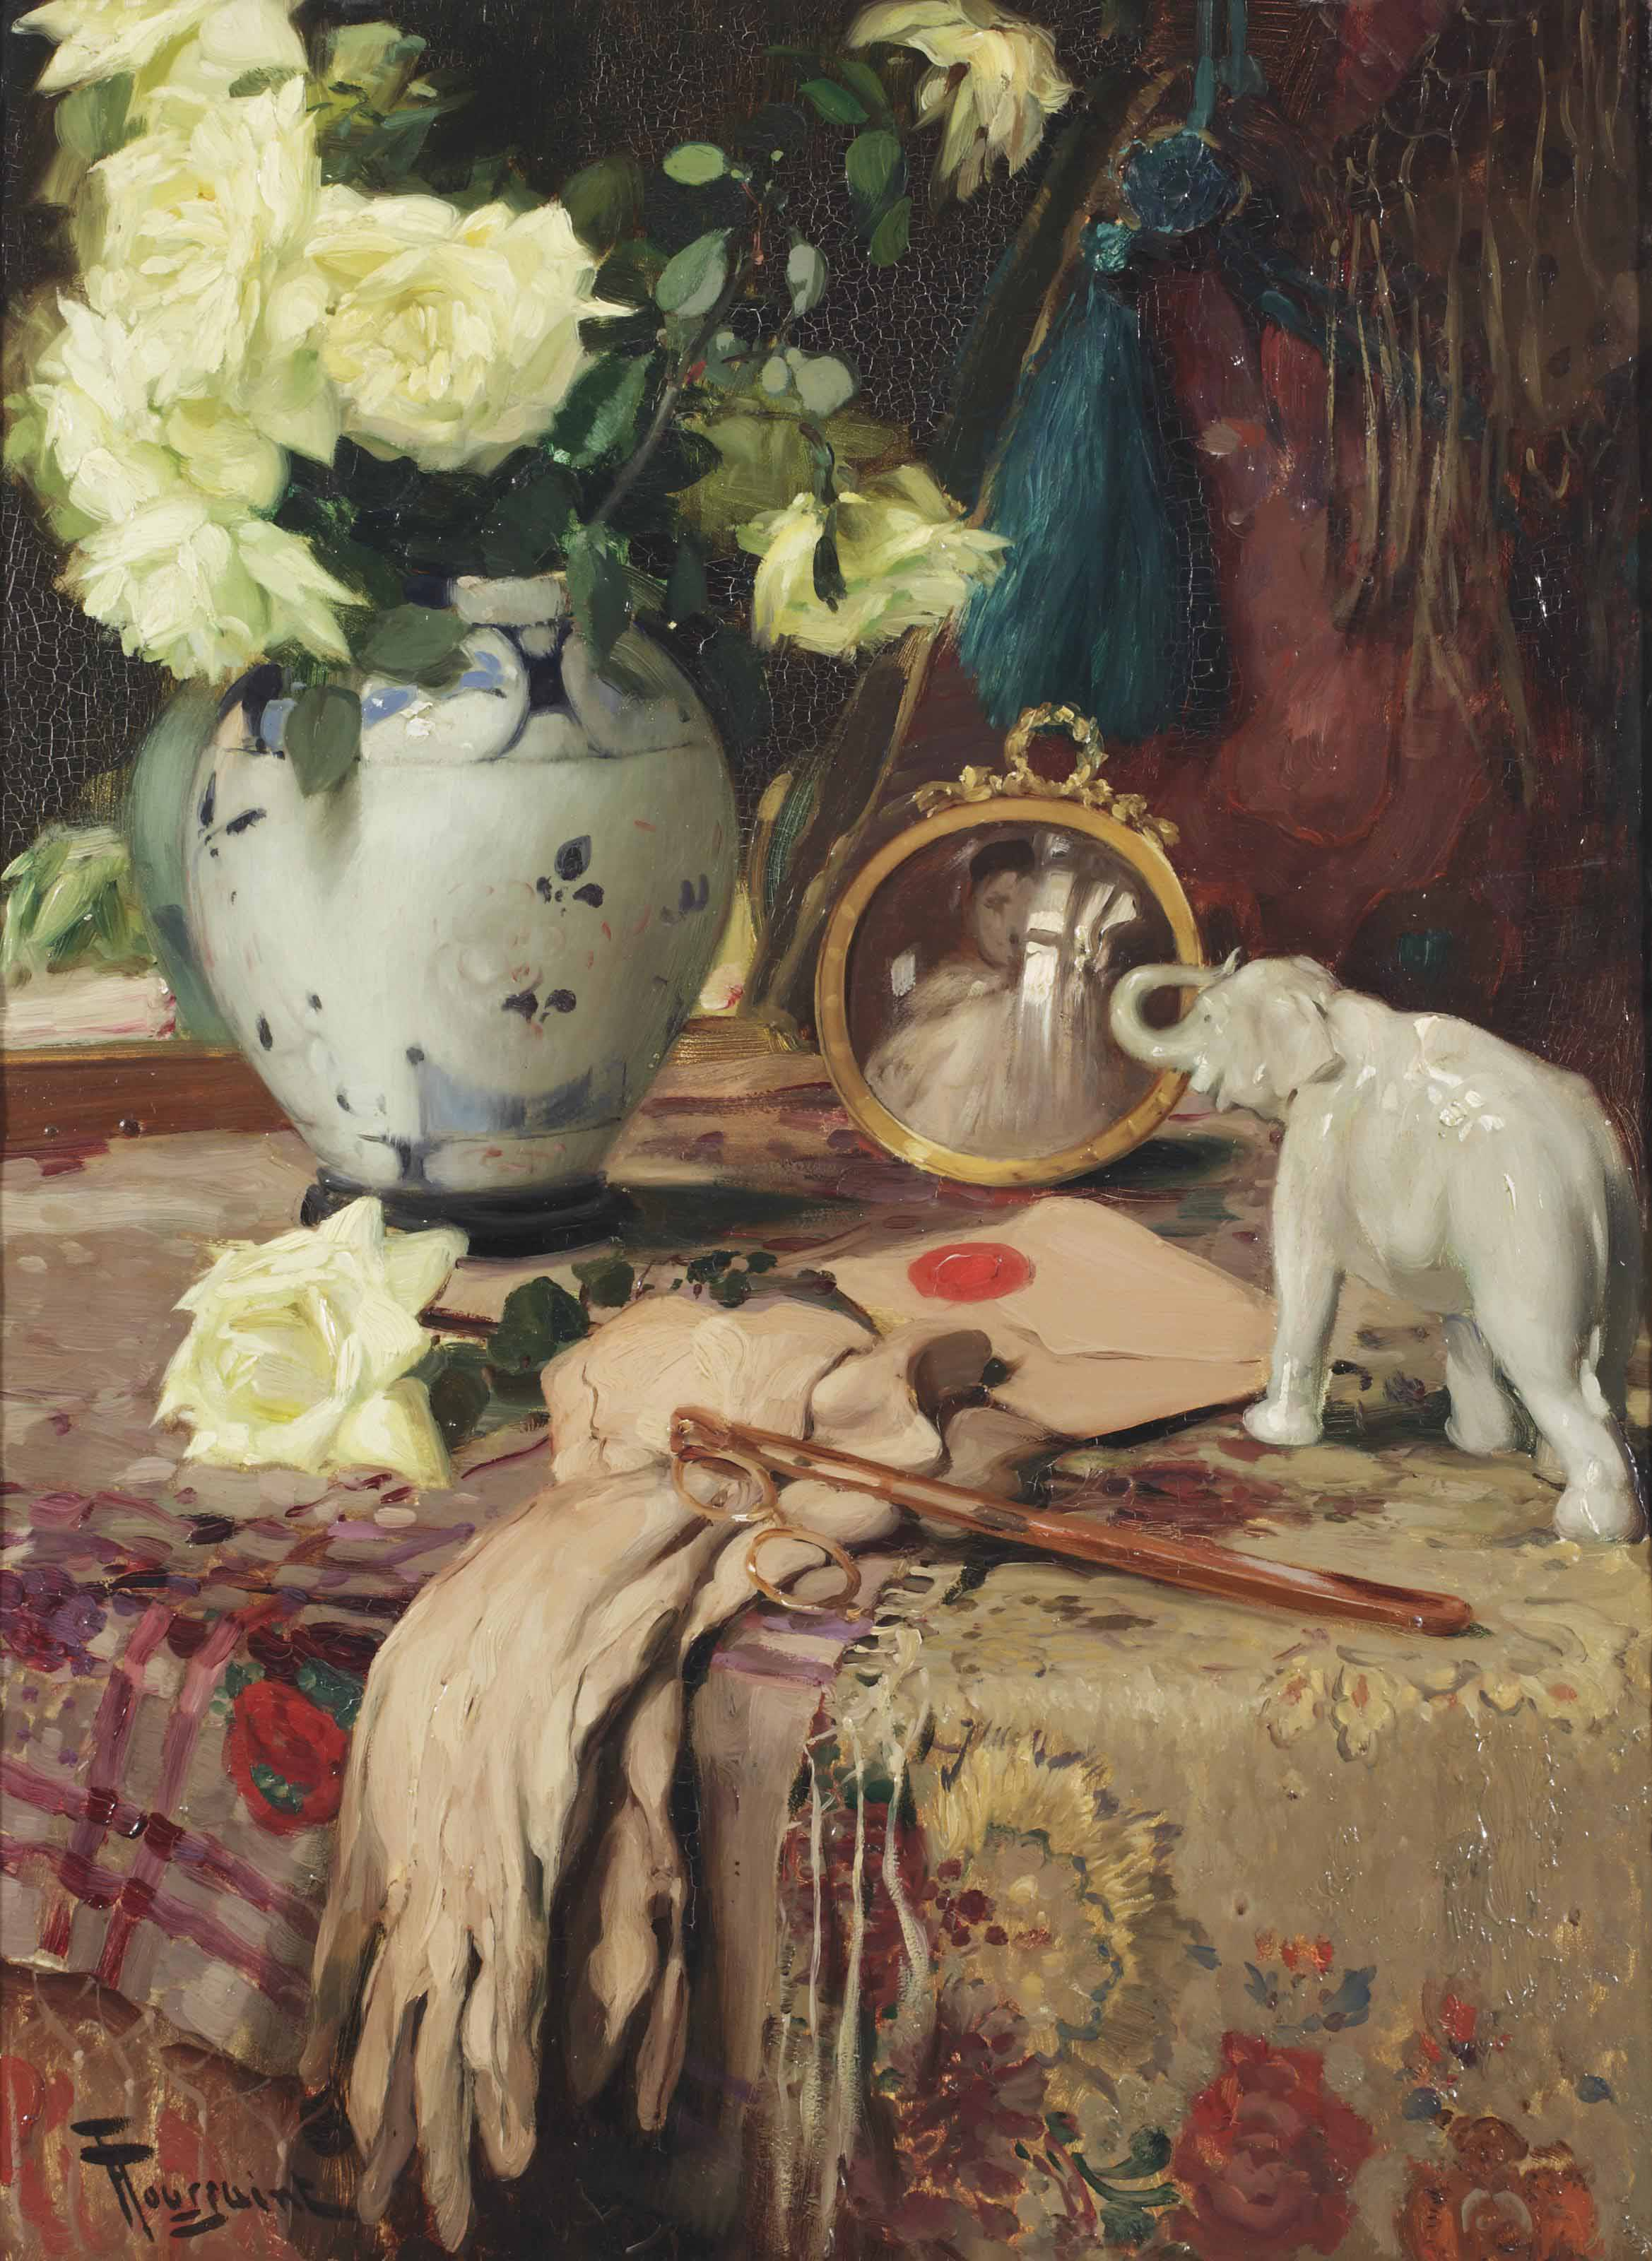 A still life with white roses in a vase